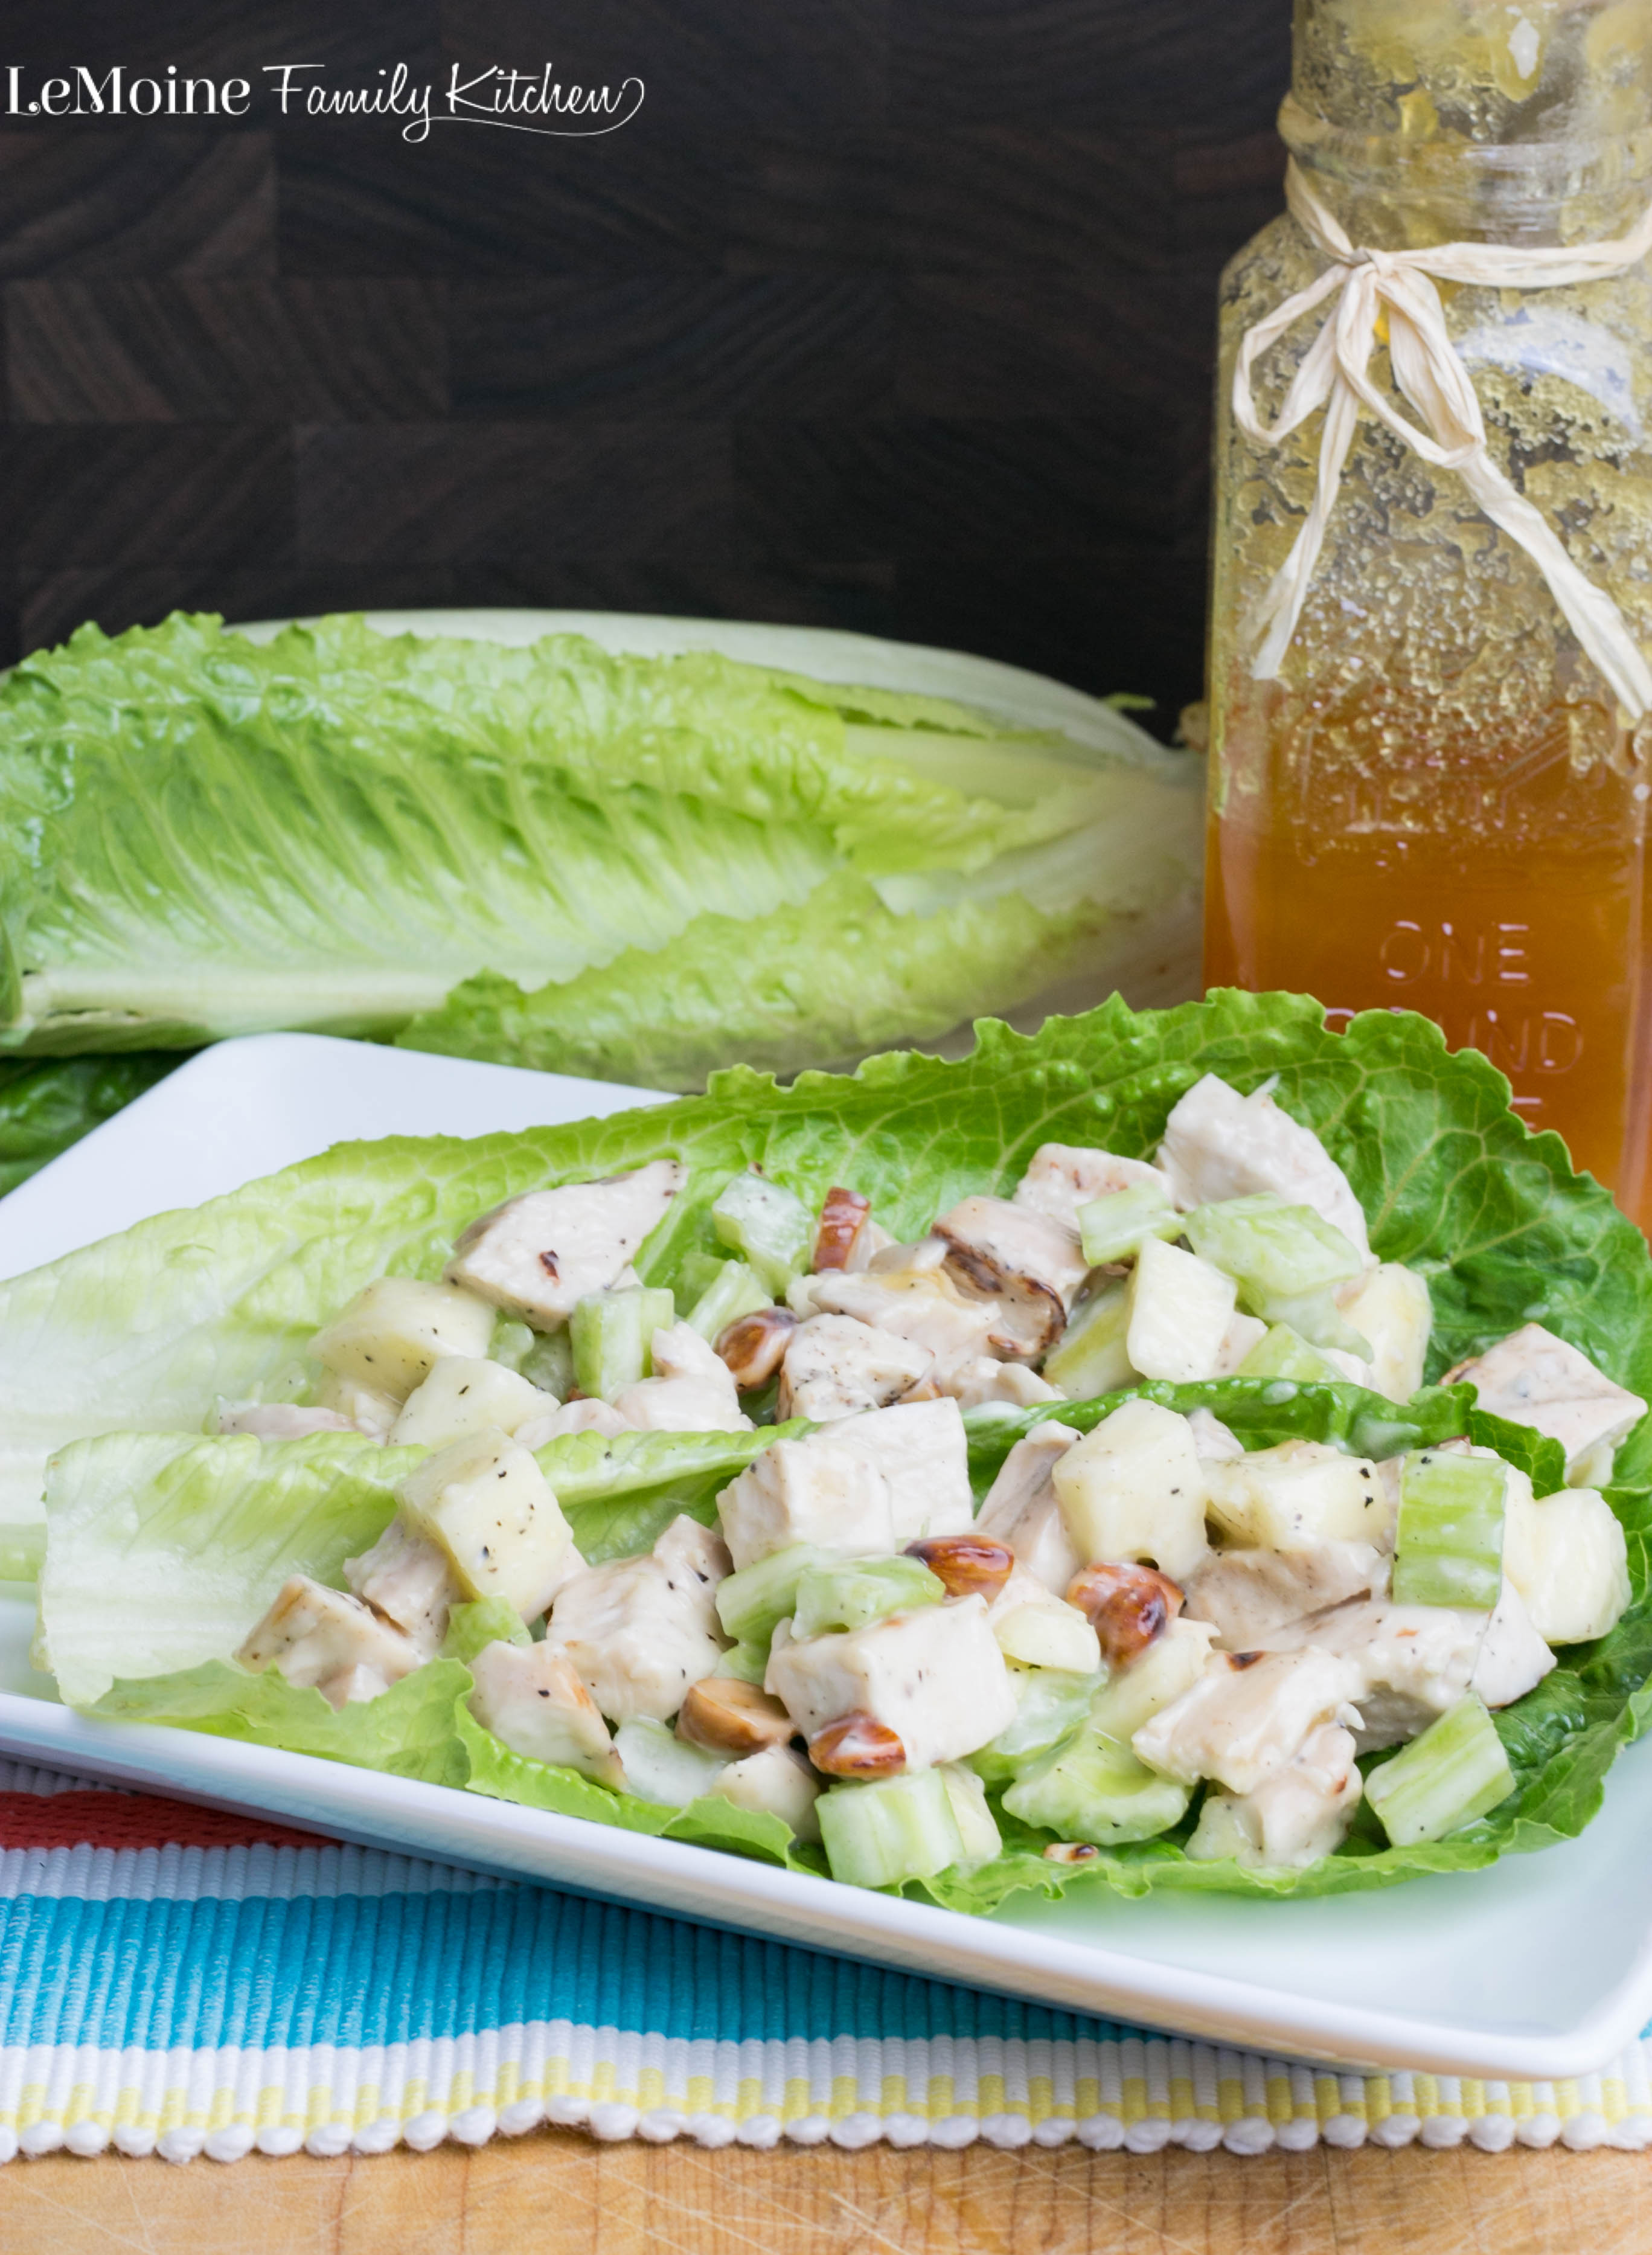 Apple Chicken Salad | LeMoine Family Kitchen . A light and refreshing chicken salad that is packed with great flavor, texture & color! #FreakyFriday